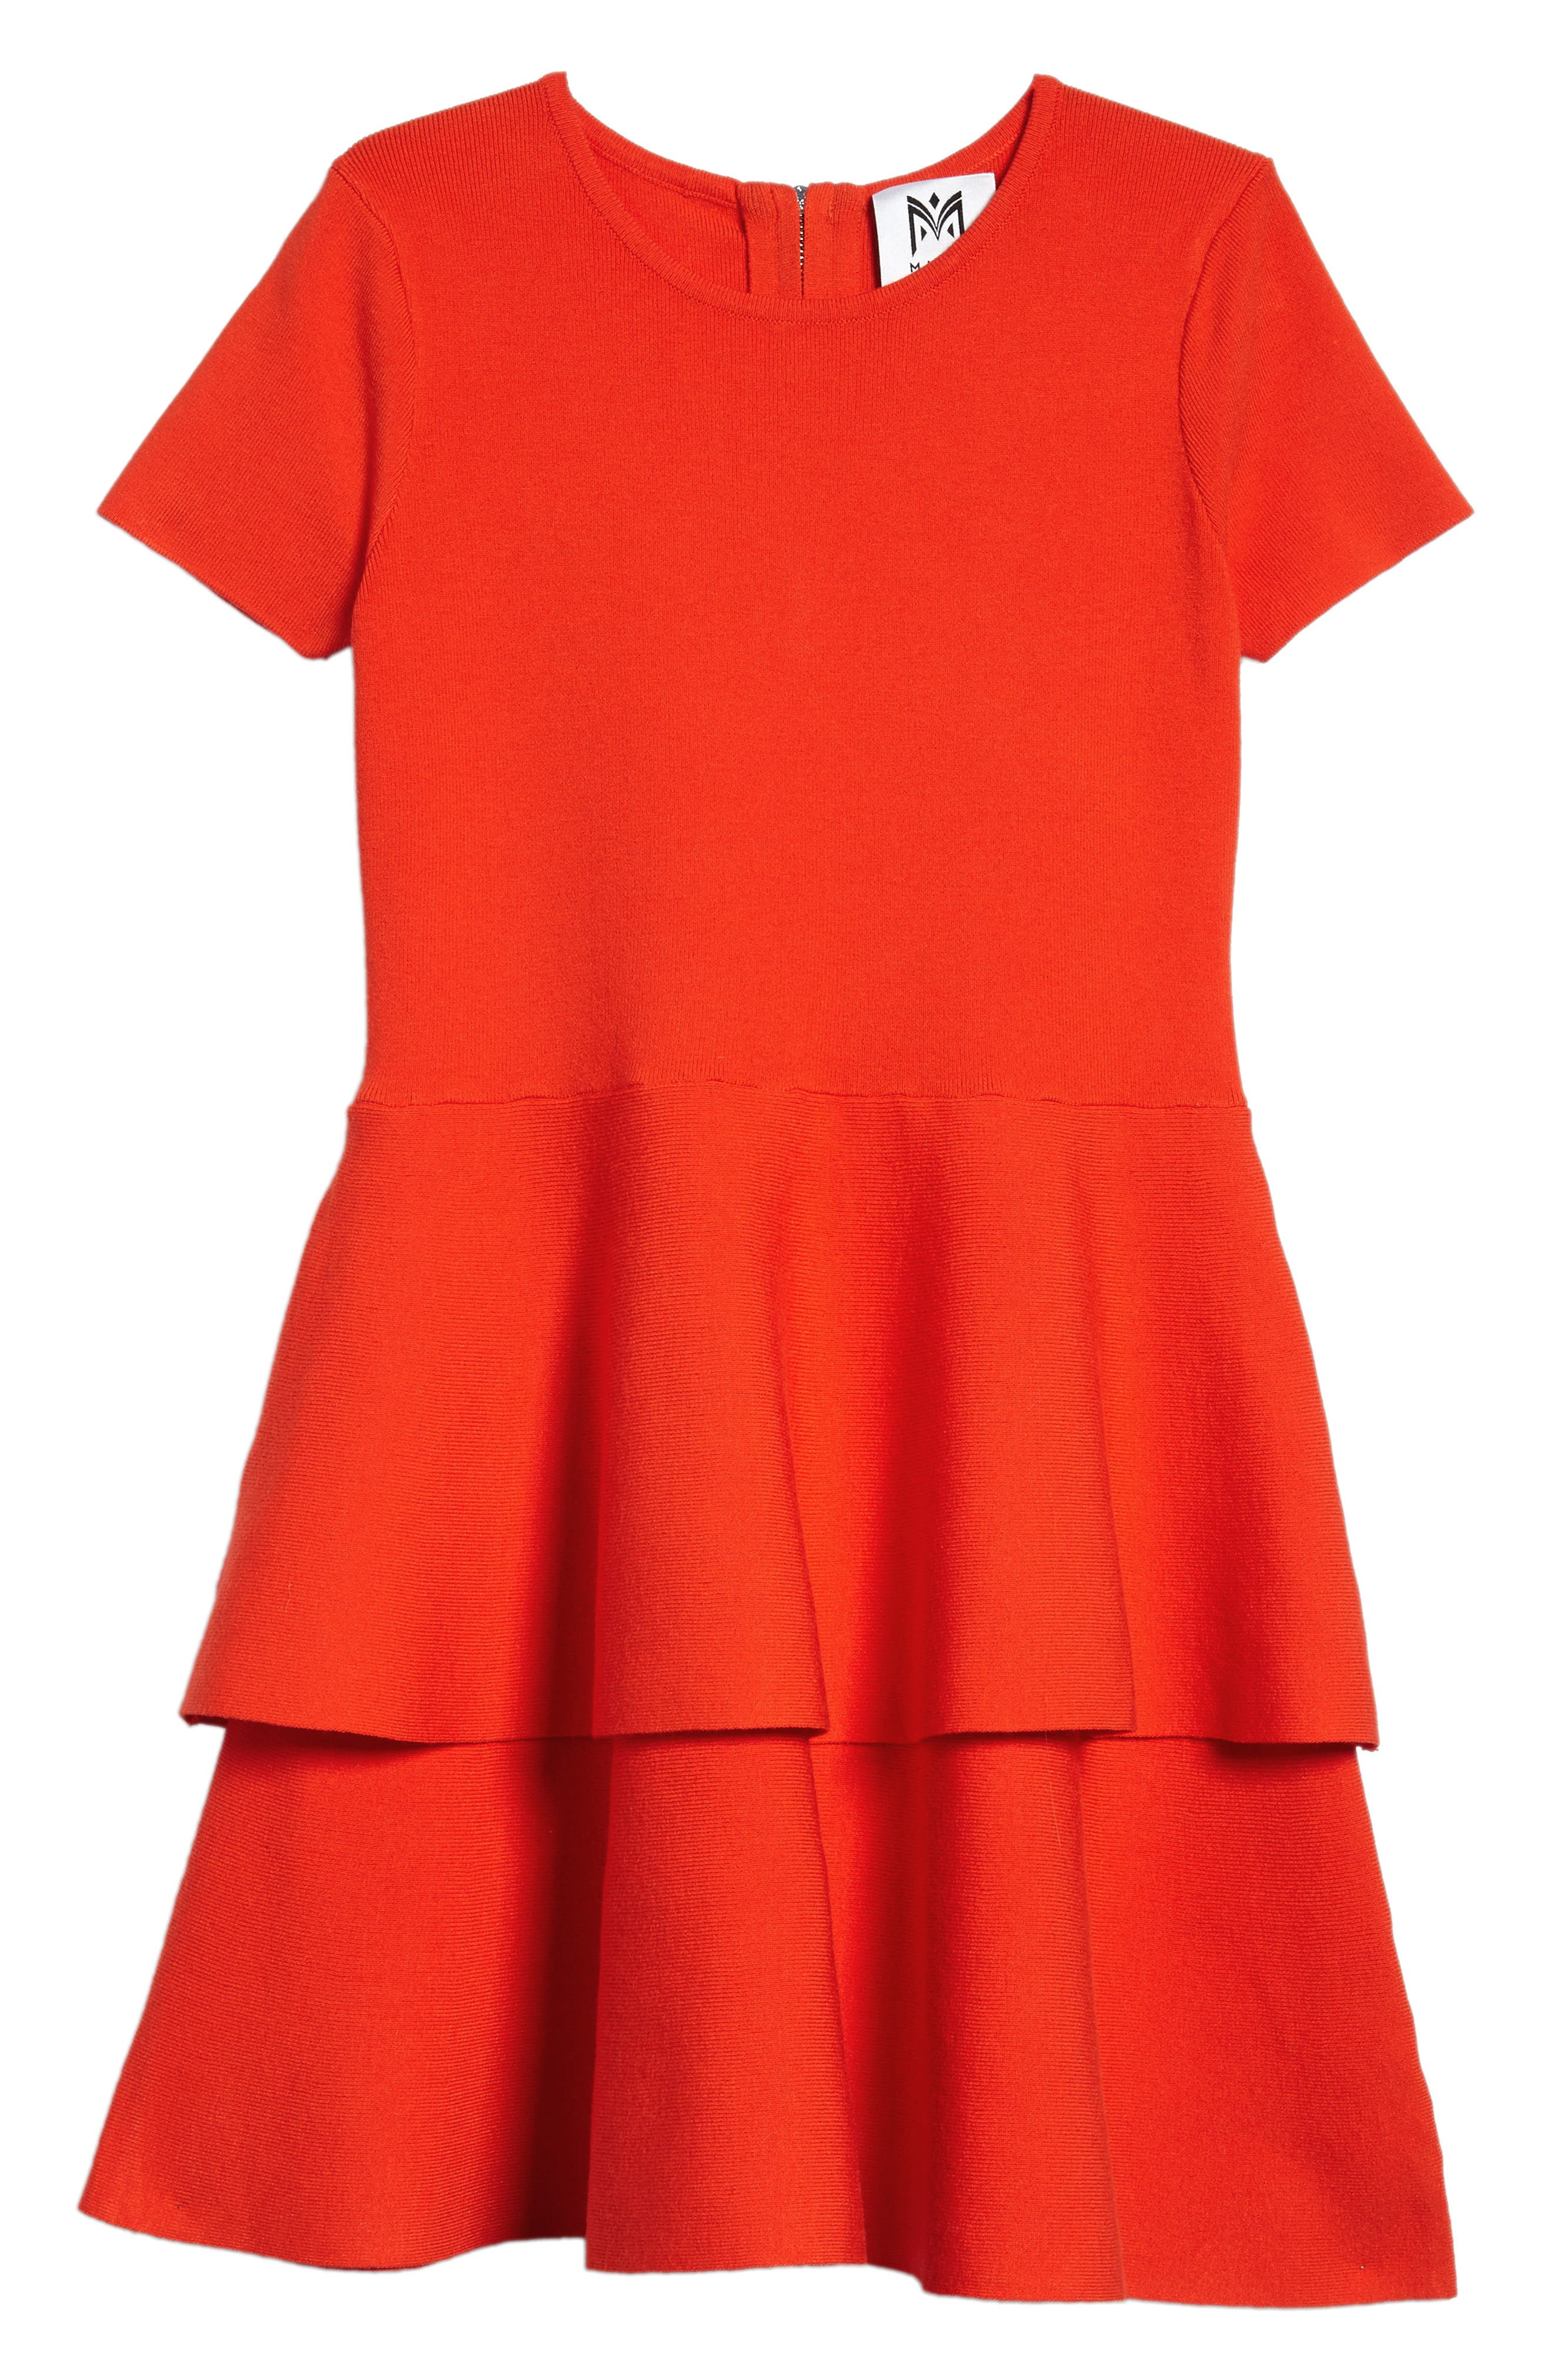 Tiered Dress,                             Main thumbnail 1, color,                             Poppy